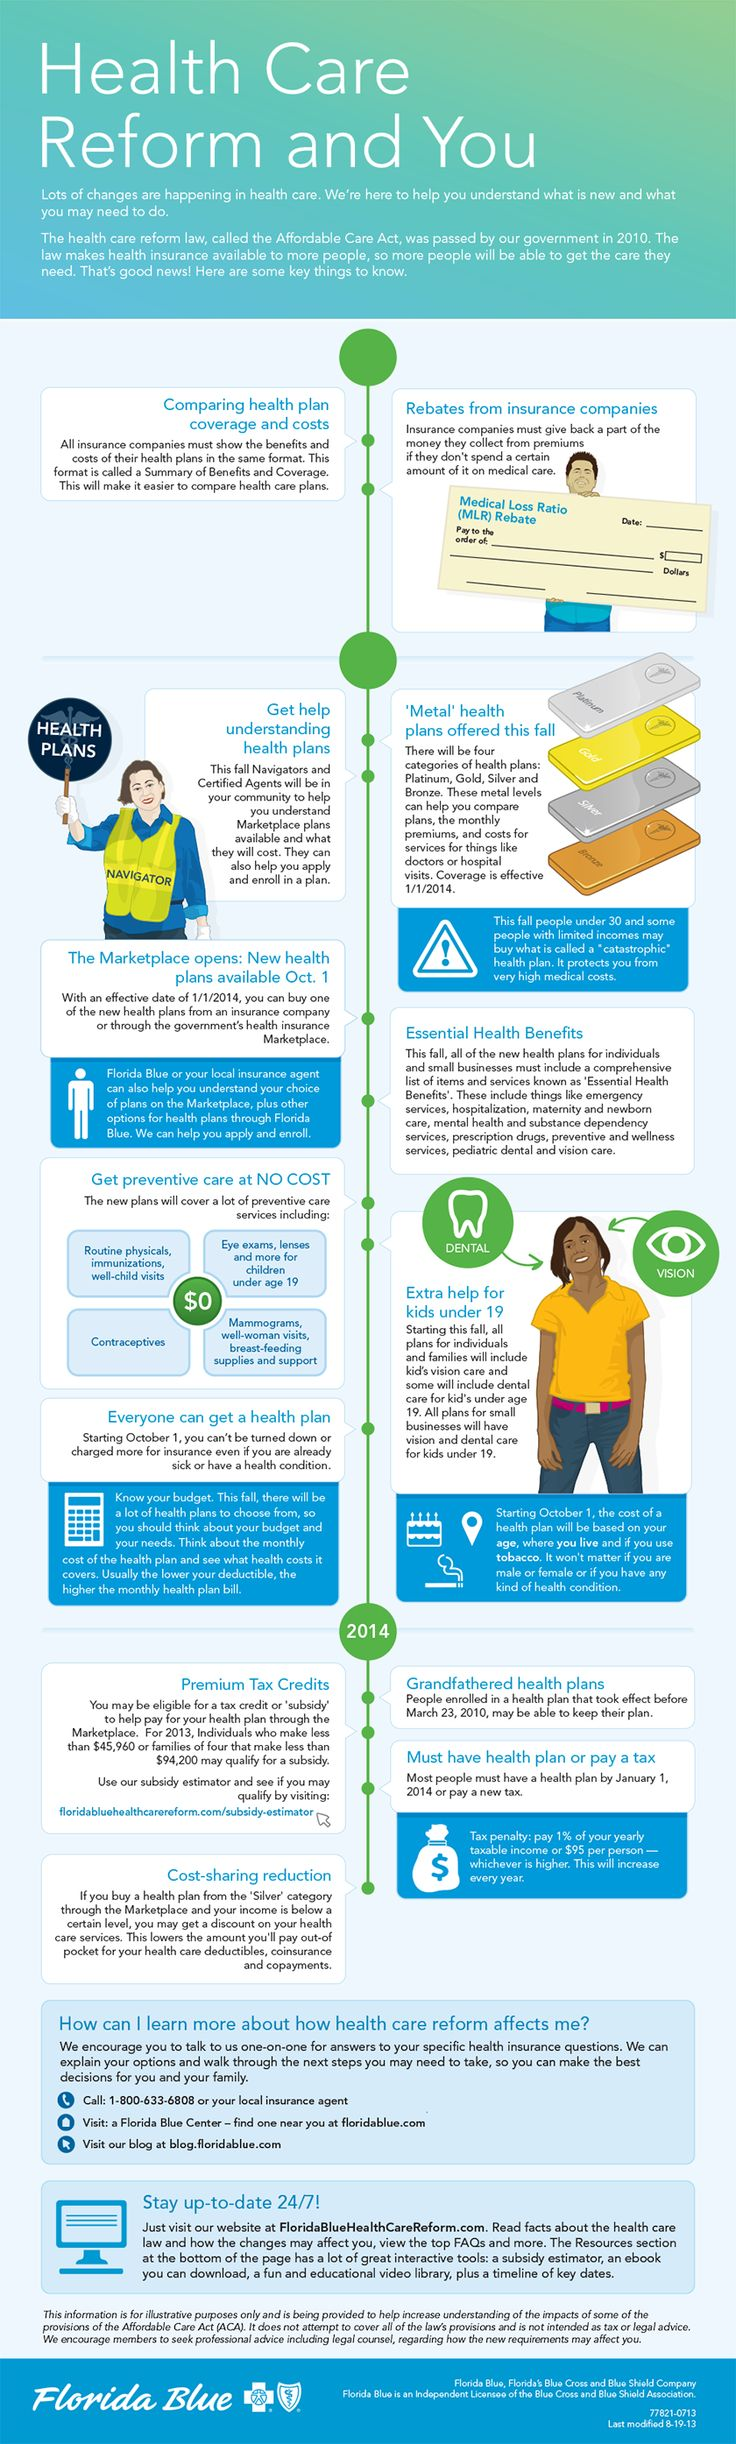 Starting this October, millions of Americans will go online to buy health insurance. Florida Blue has created an infographic on 'Health Care Reform and You' to help you understand the timeline, what is new and what you may need to know.